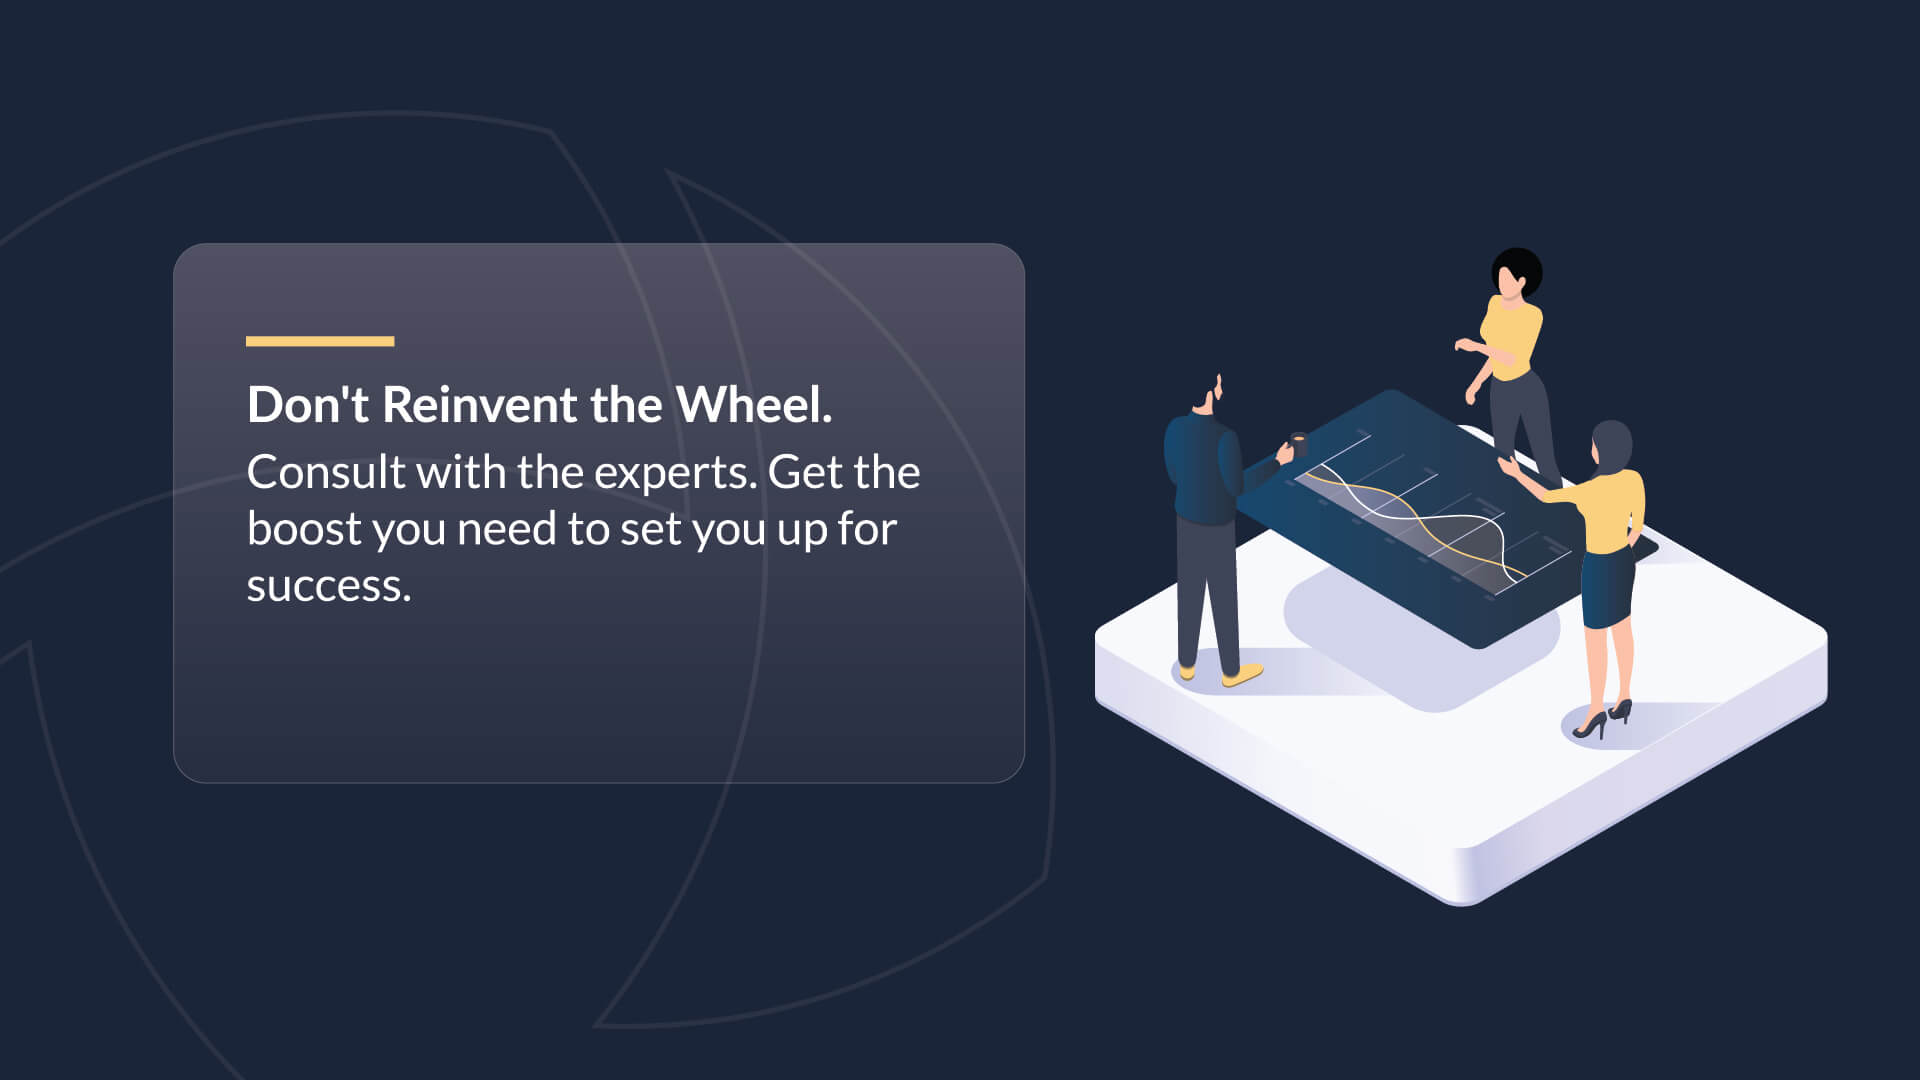 Don't reinvent the wheel. Consult with the experts. Get the boost you need to set you up for success.